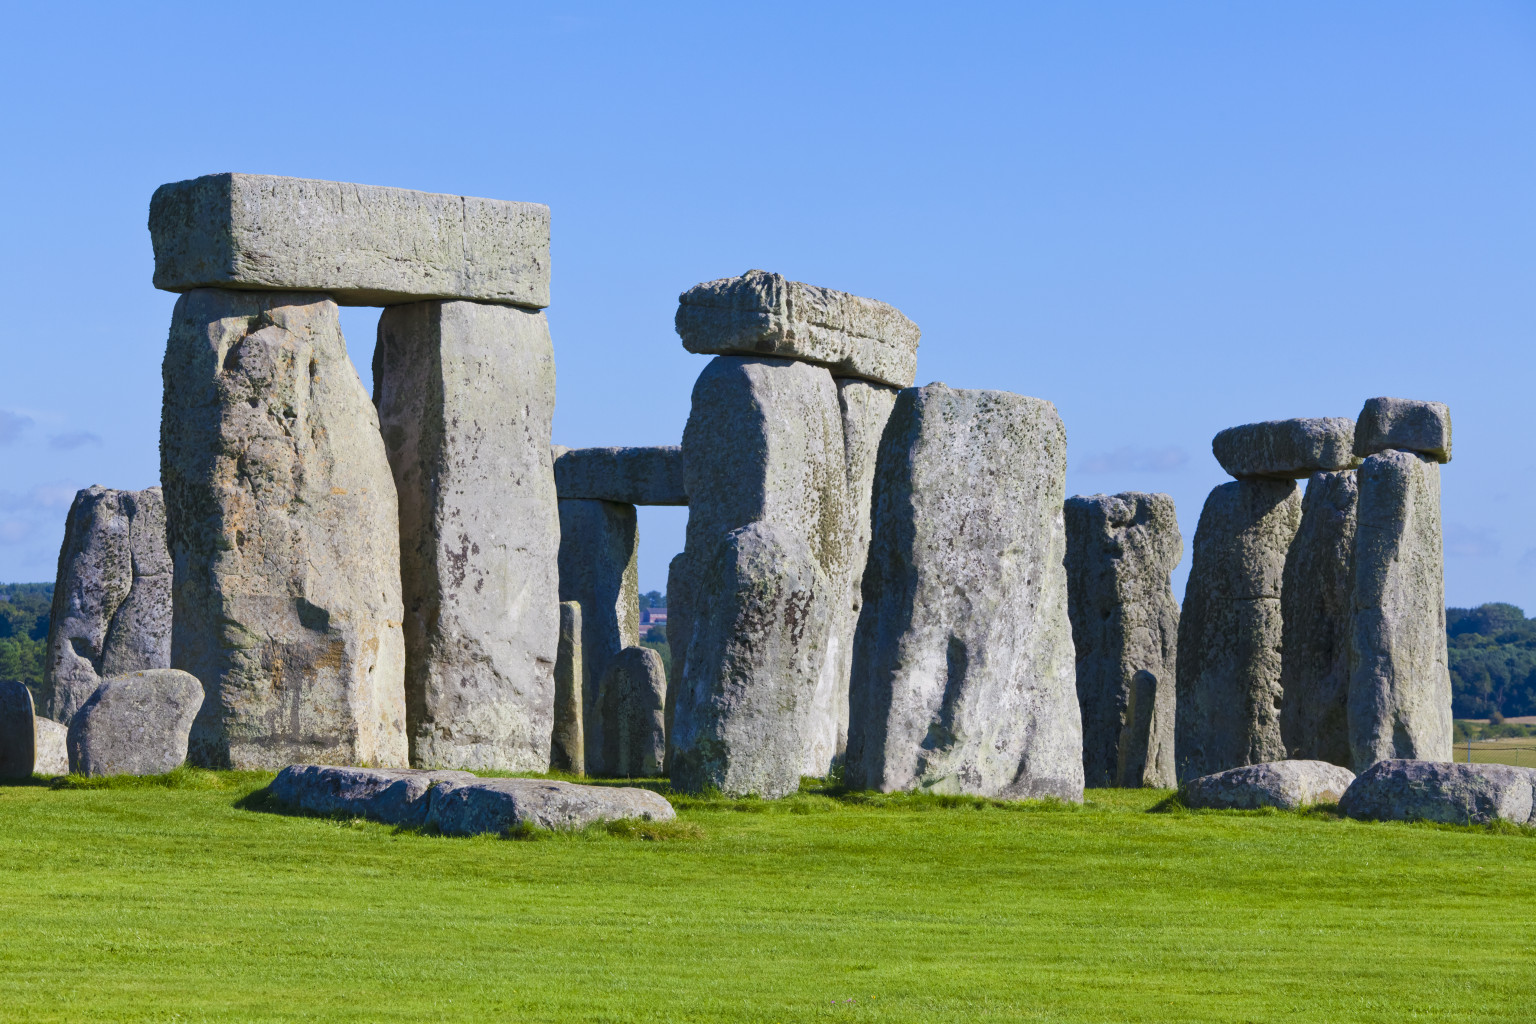 the facts and speculations about the stonehenge structures However, have challenged these speculations and have insisted that the  monument was  facts9 thus, the conquering beaker people, who supposedly   happenedt the transformation of timber structures into stonehenge.